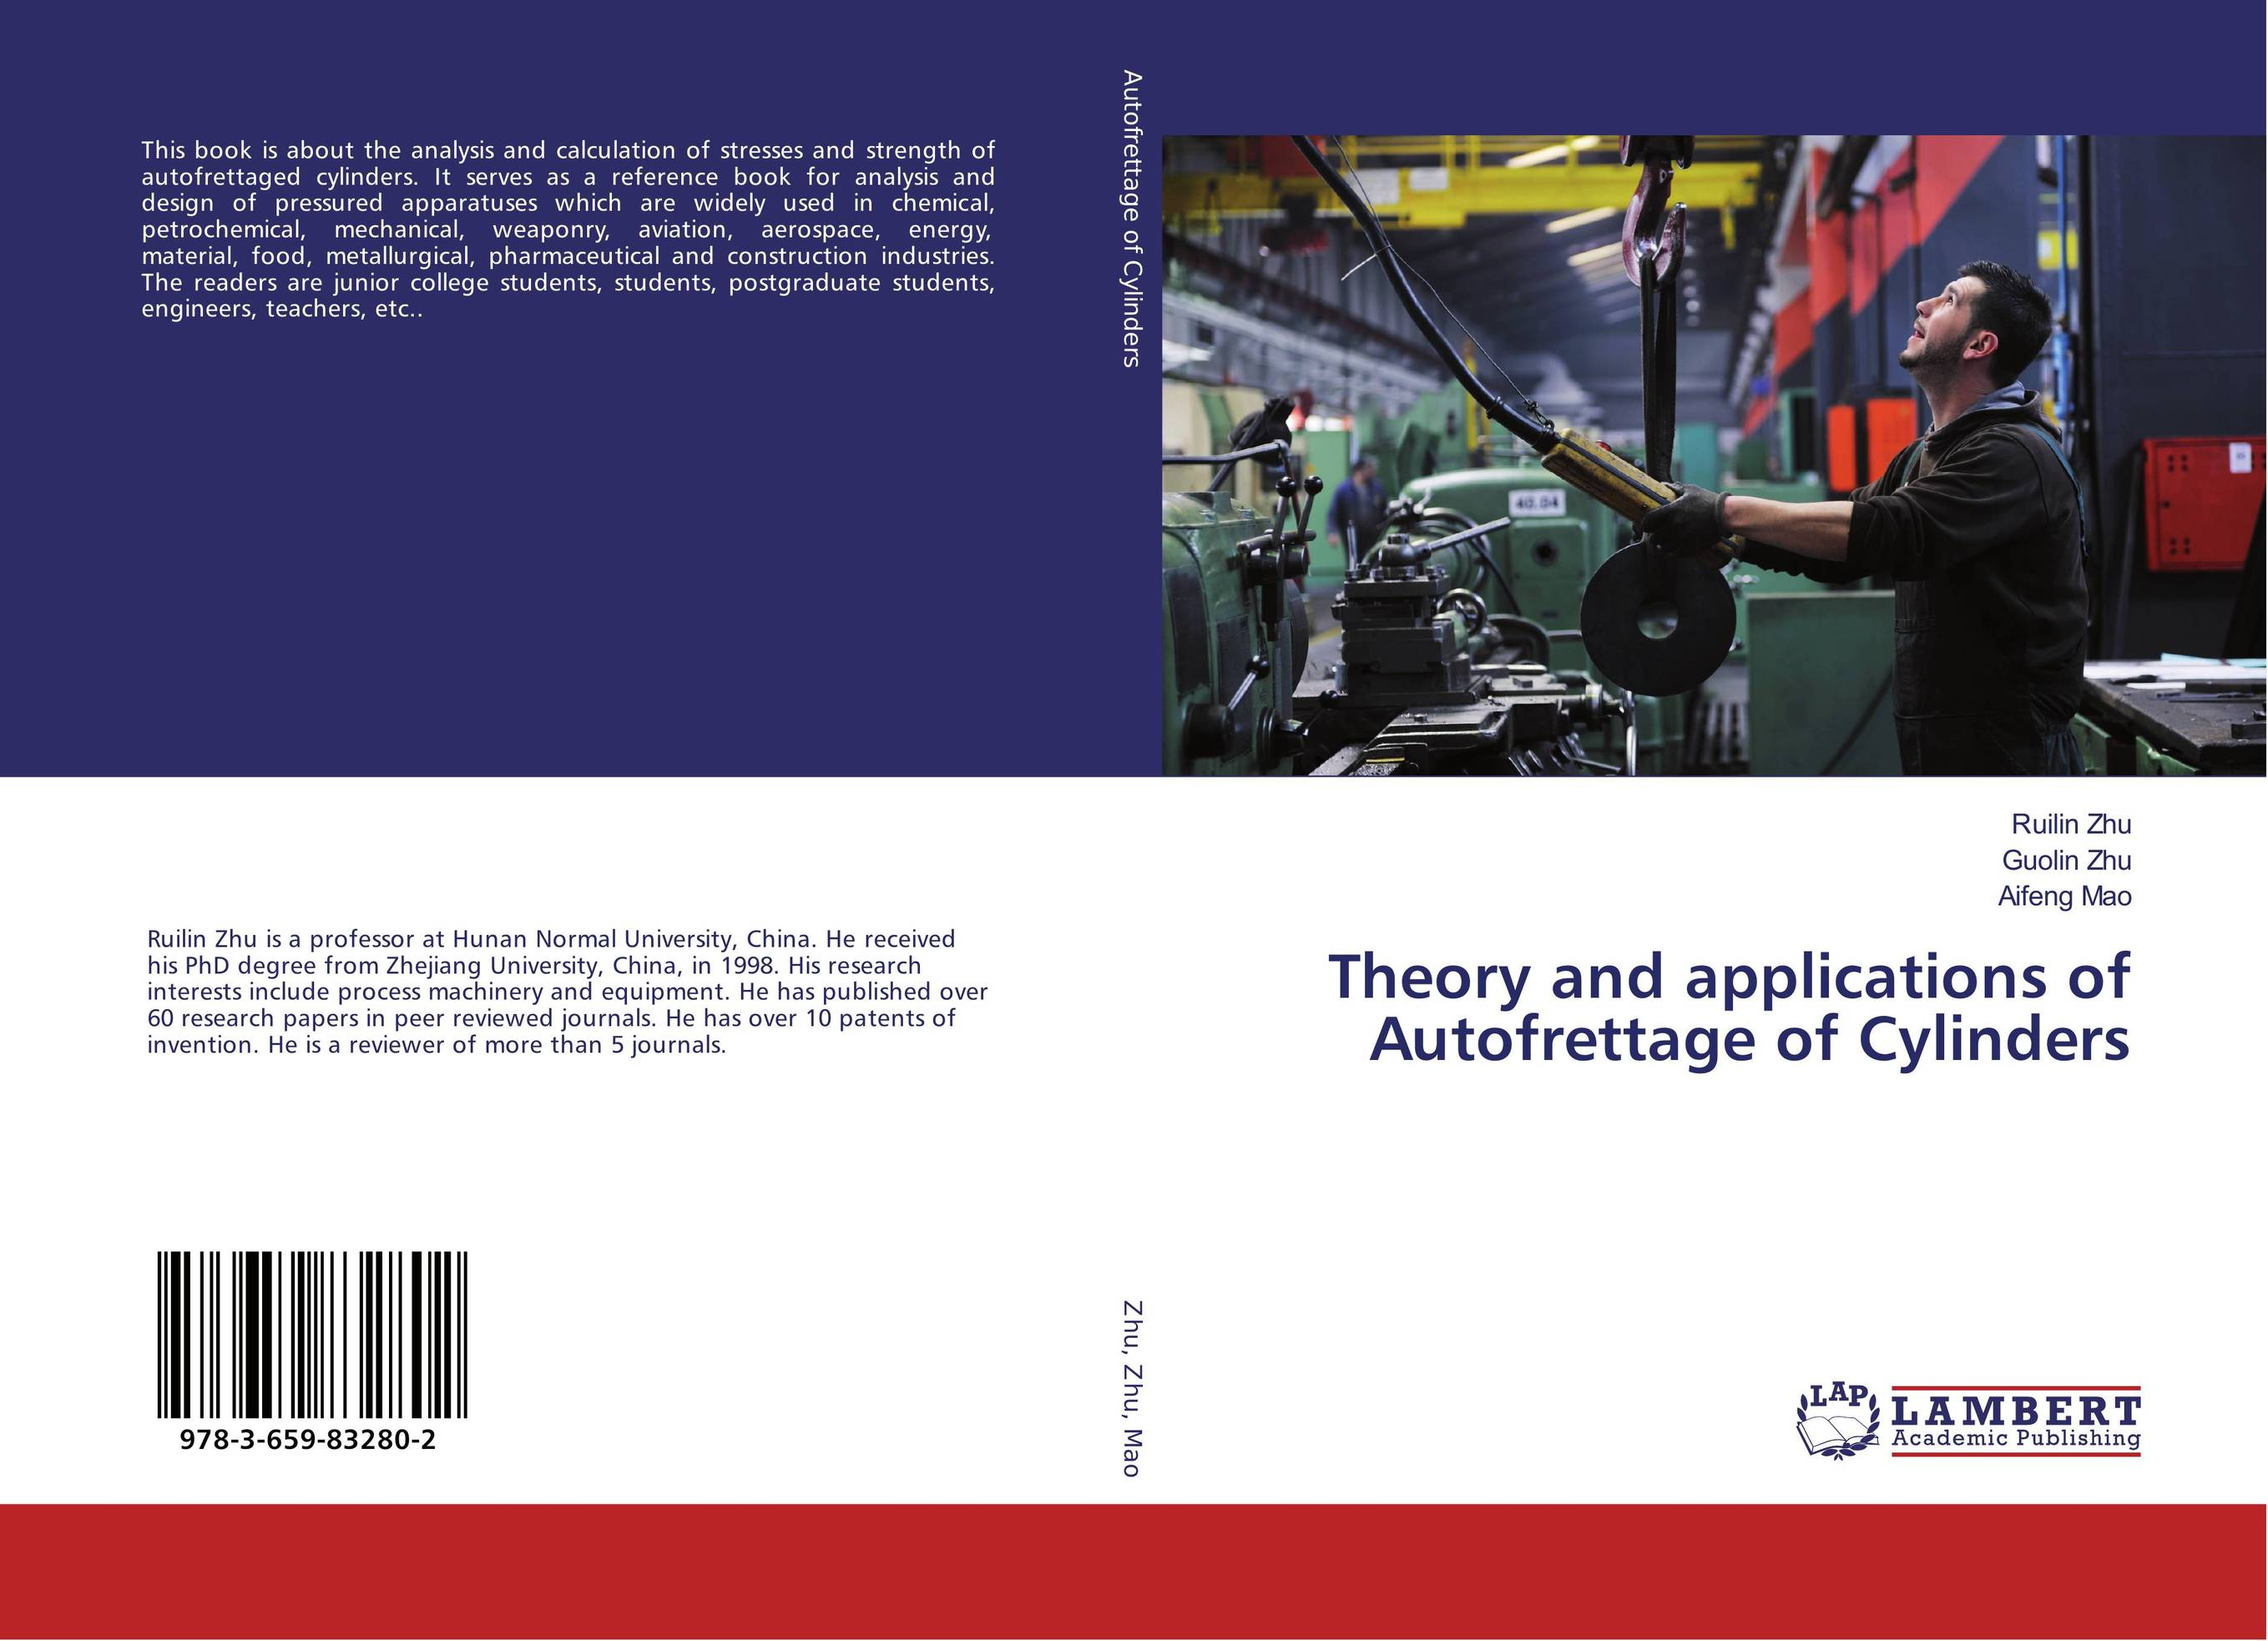 Theory and applications of Autofrettage of Cylinders